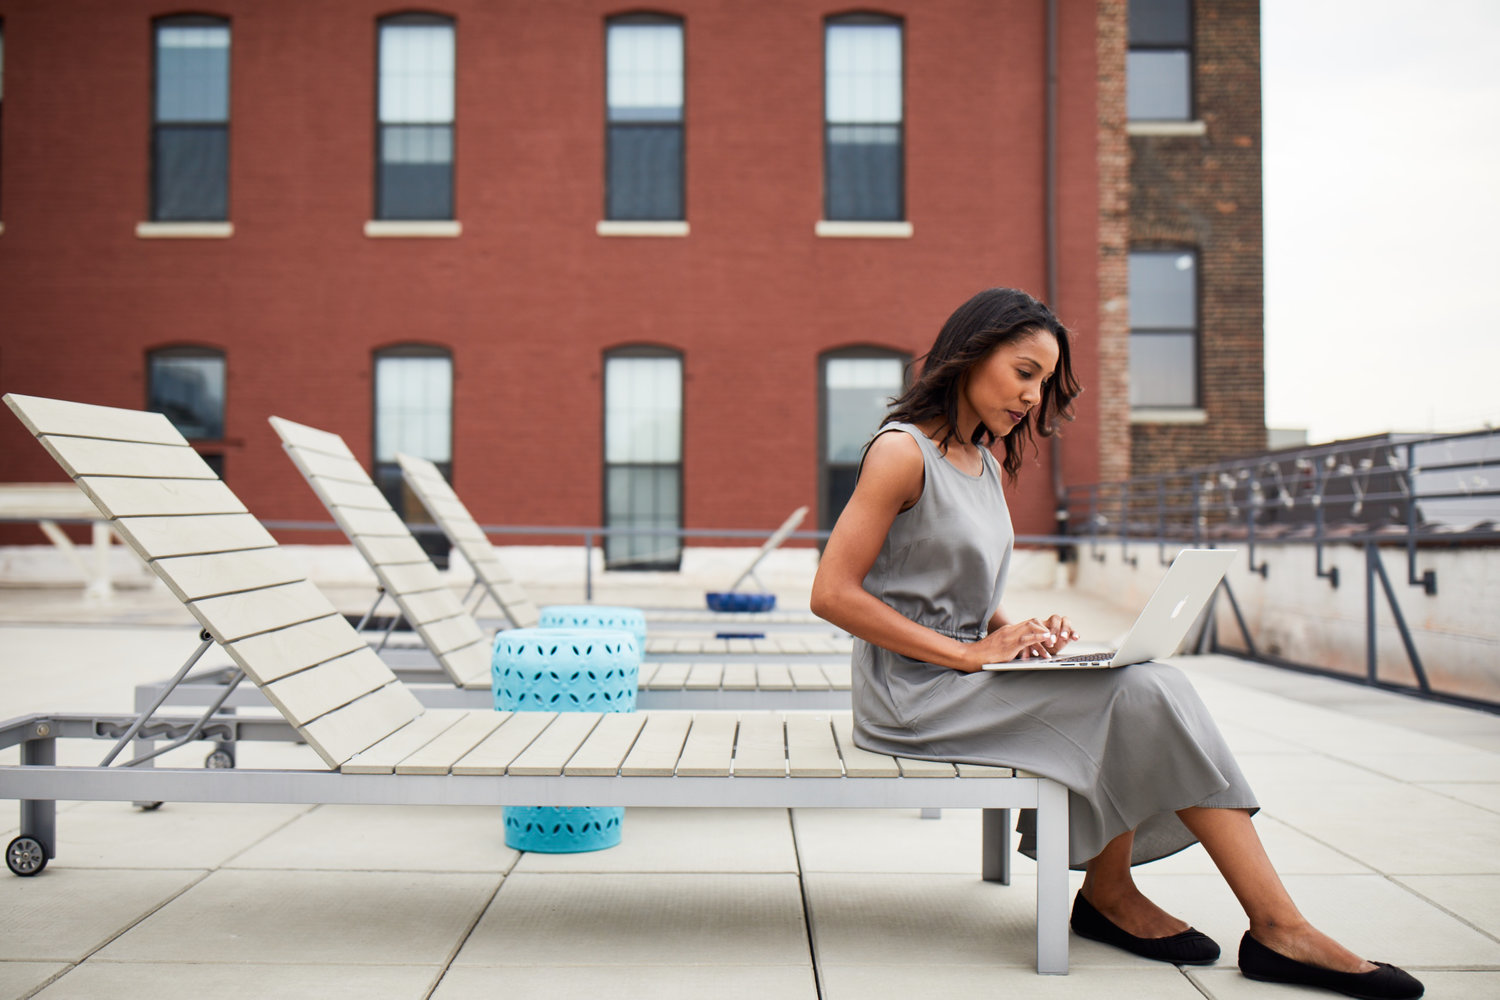 Woman working in an outdoor office environment